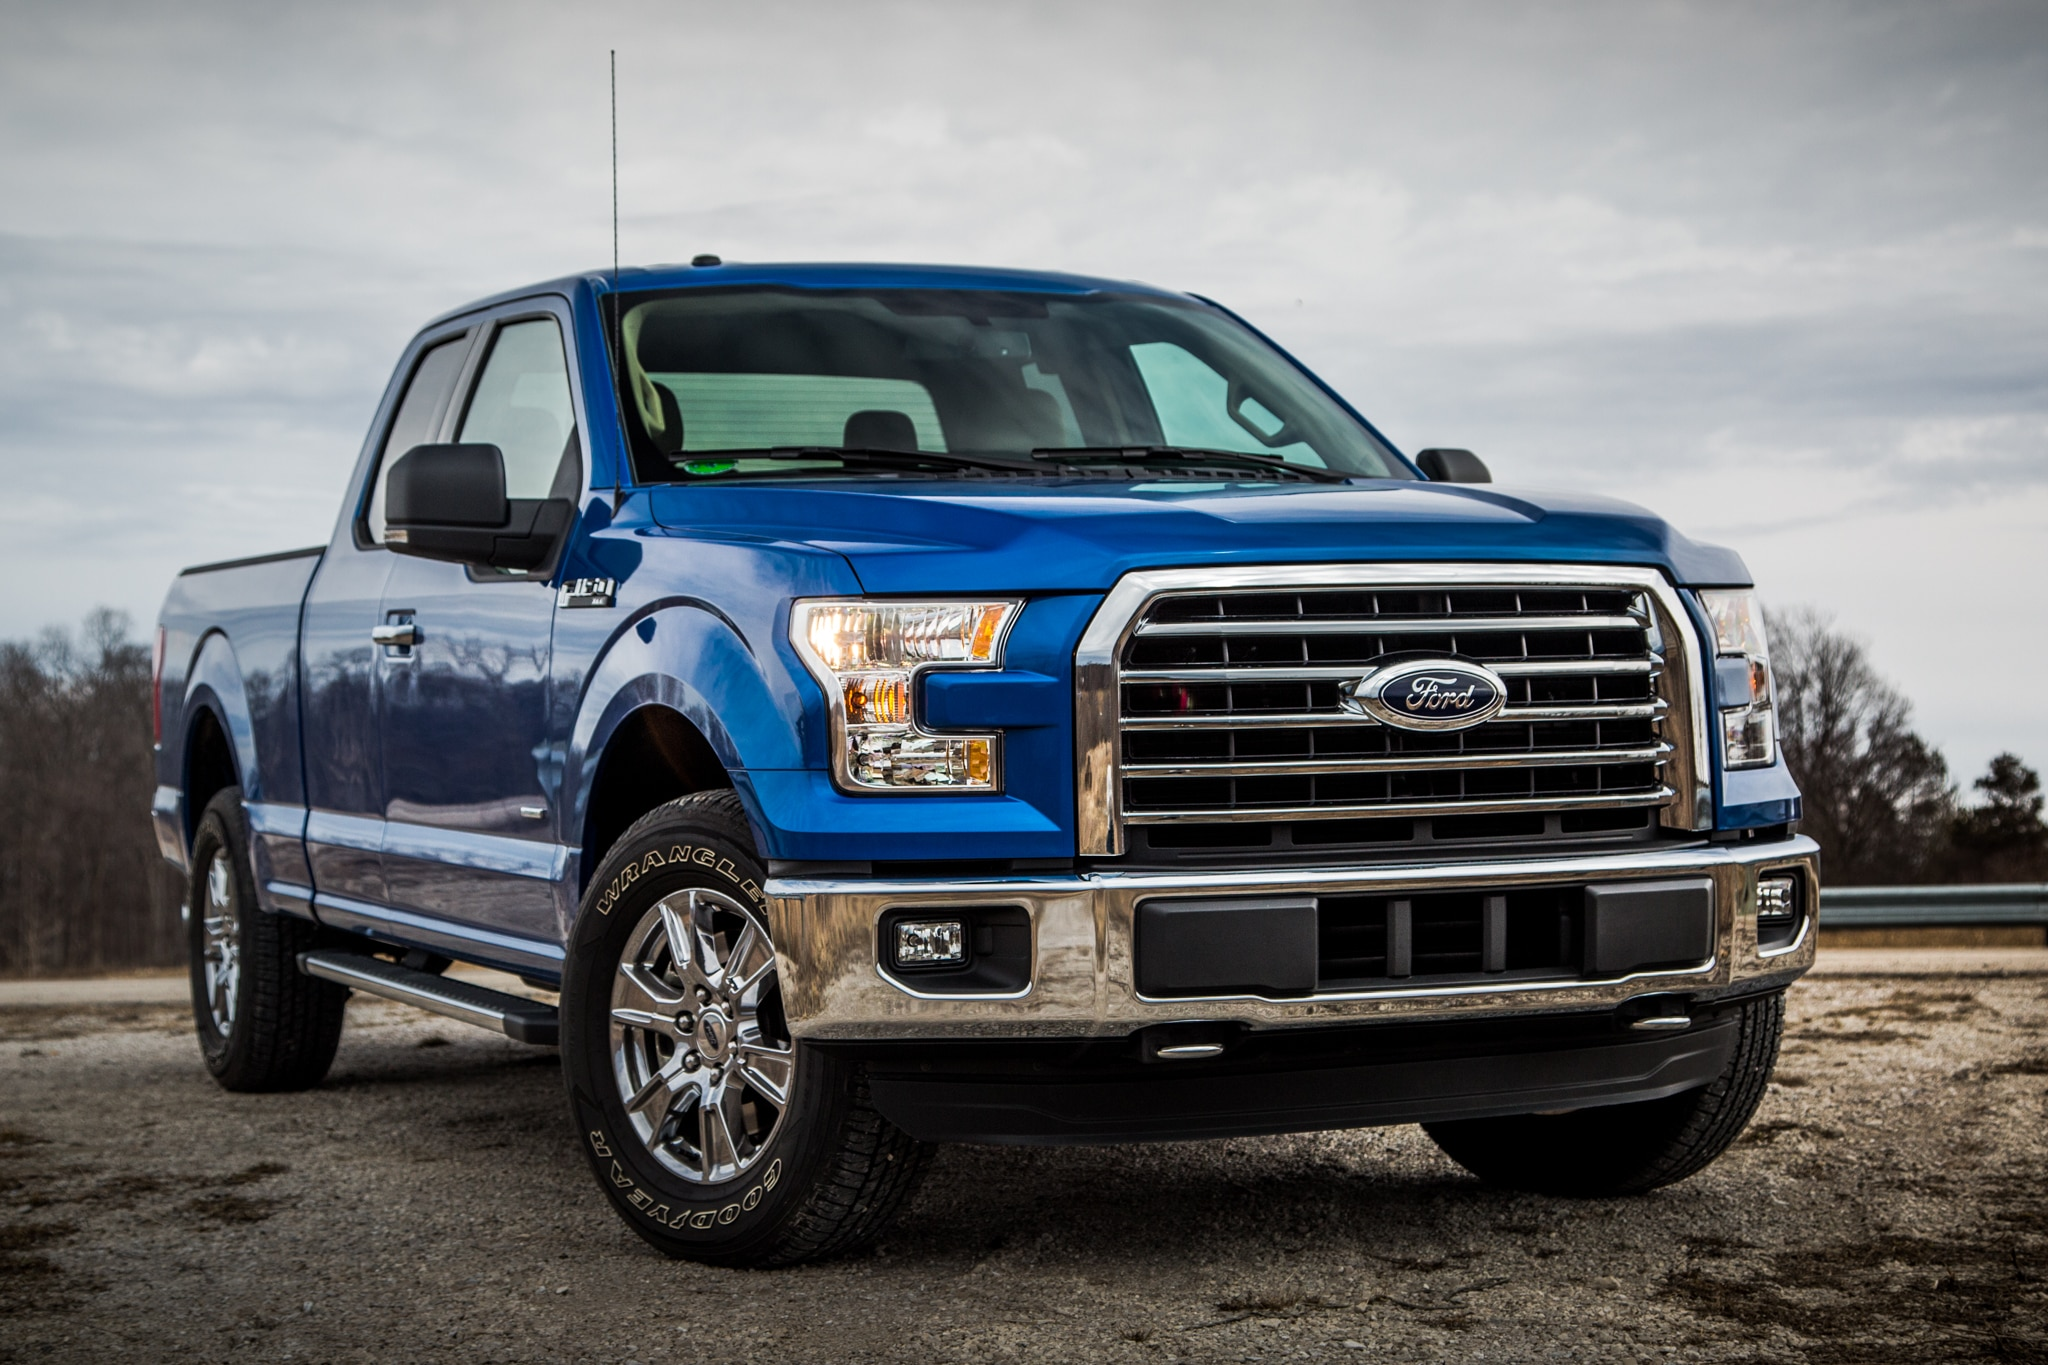 ford f 150 crash test reveals major safety gap between body variants. Black Bedroom Furniture Sets. Home Design Ideas